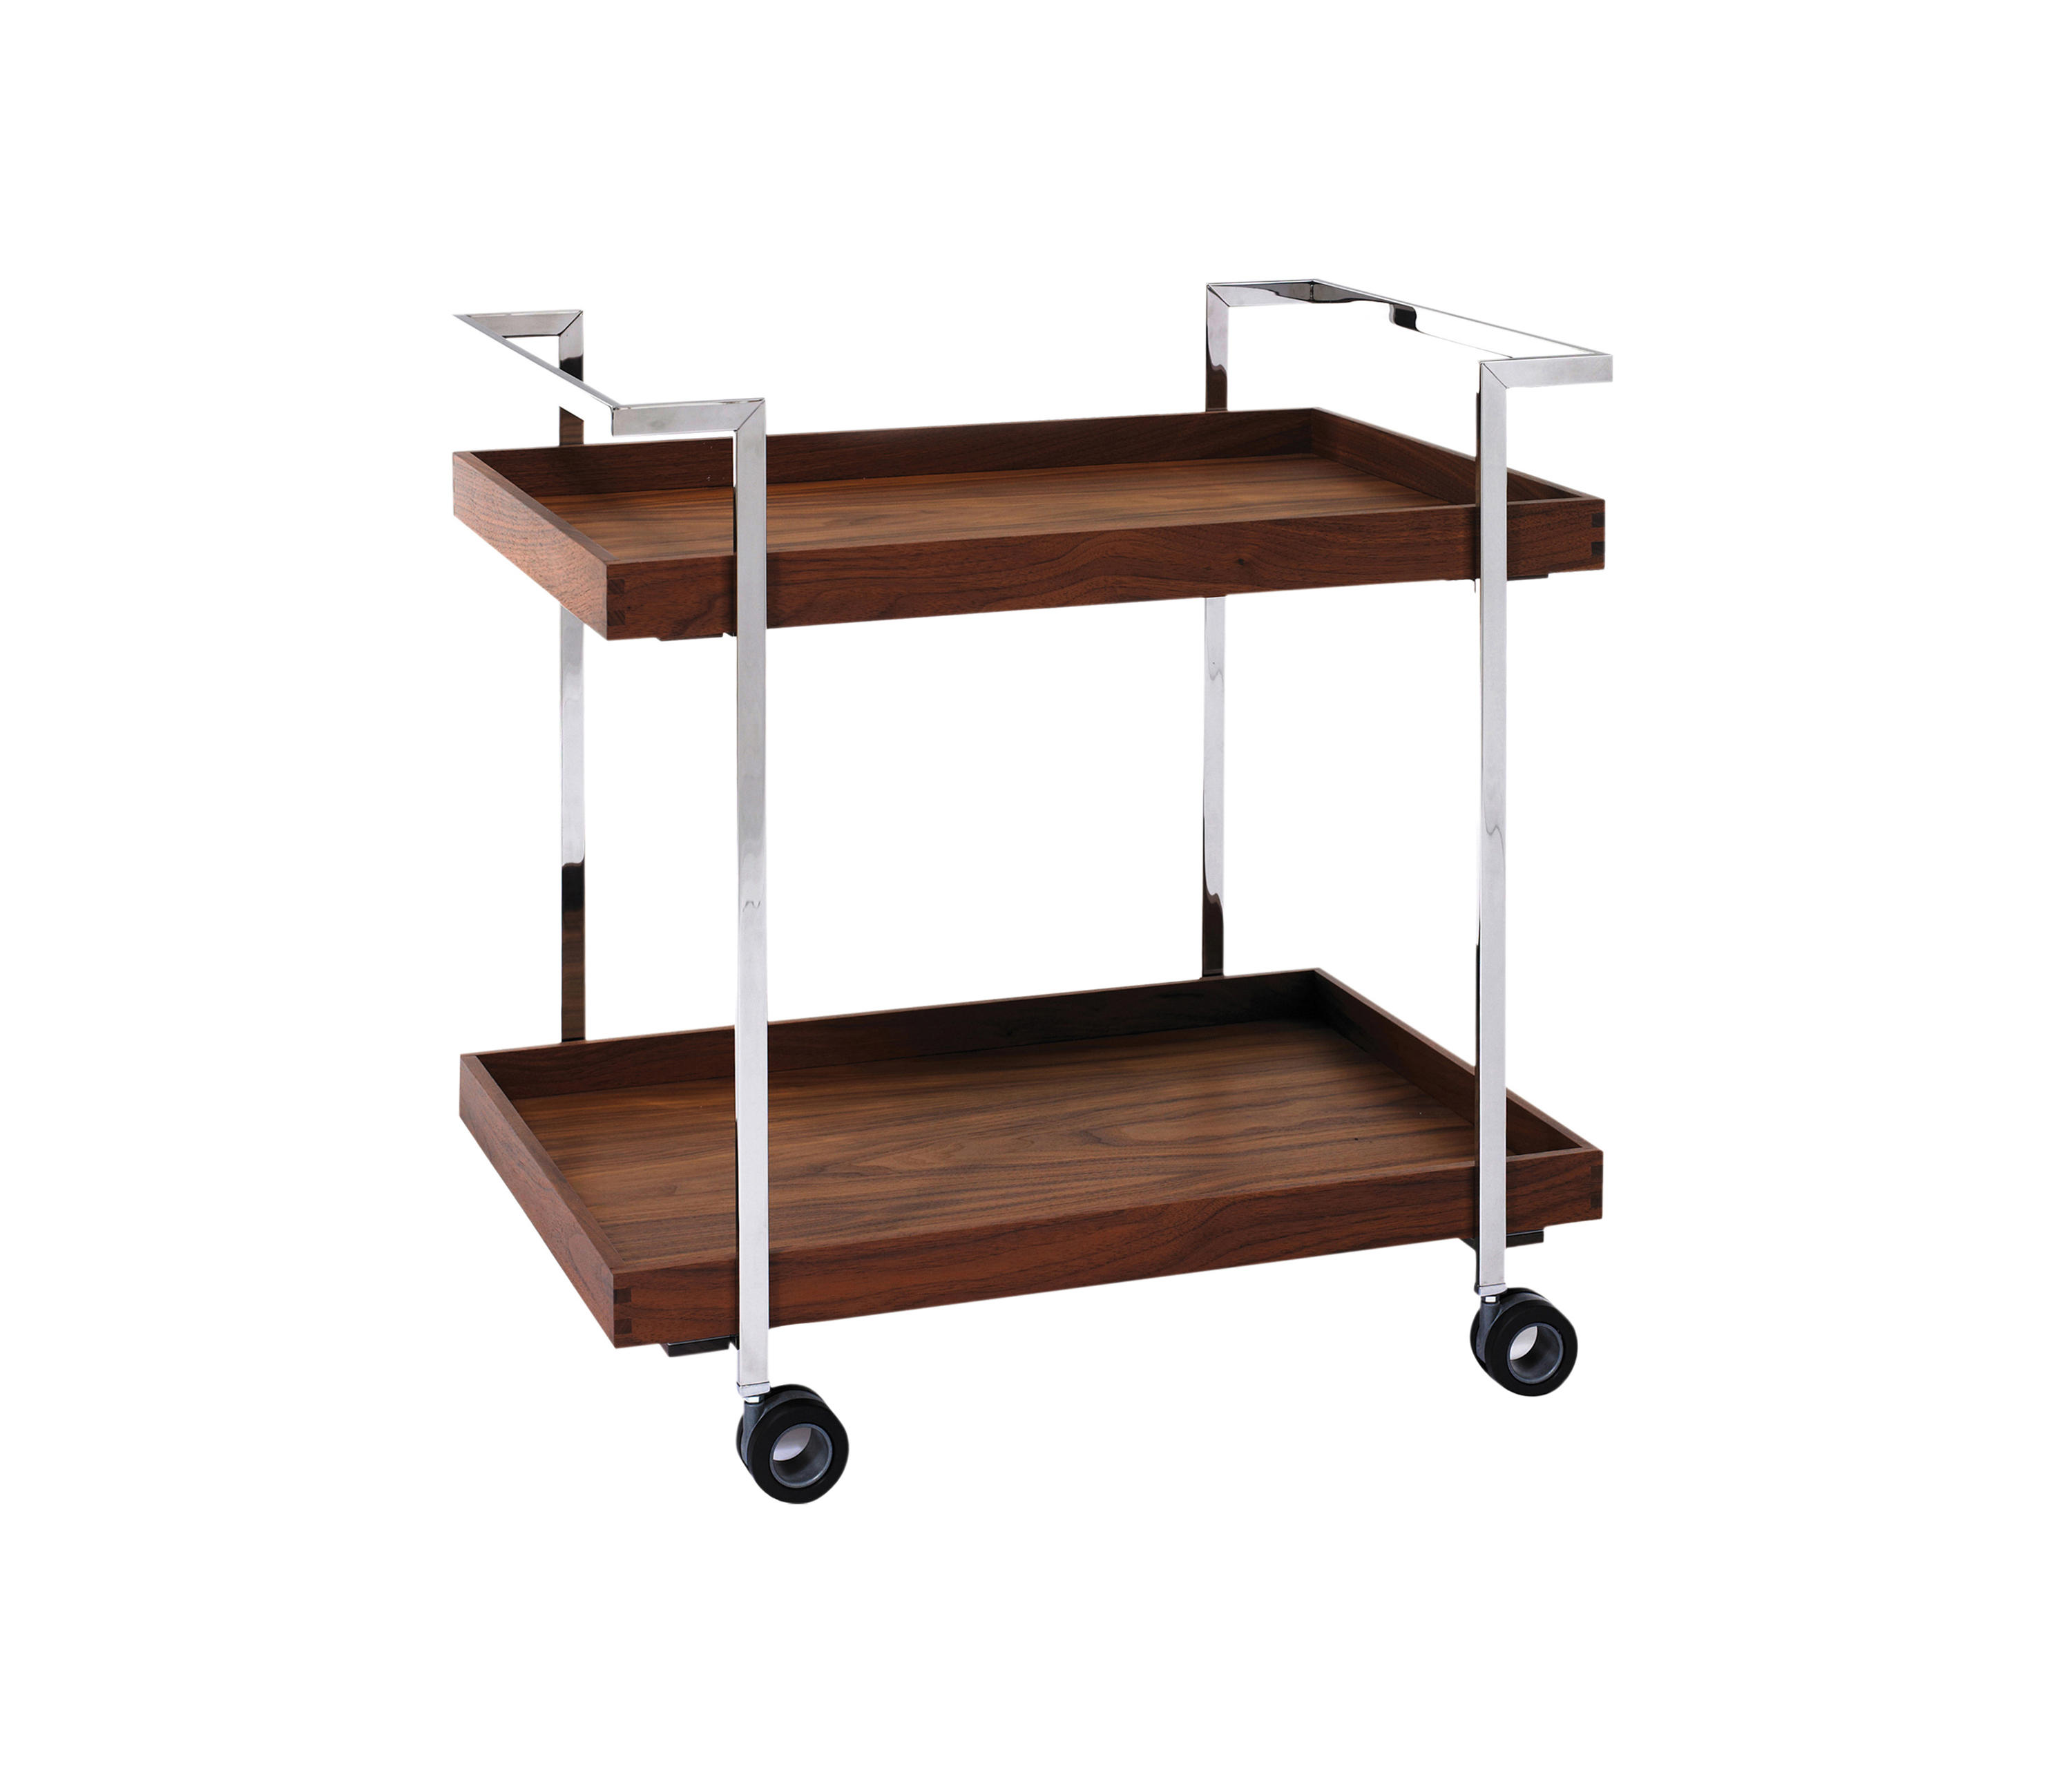 Barwagen Gold Pioneer T63s Tea Trolley Trolleys From Ghyczy Architonic